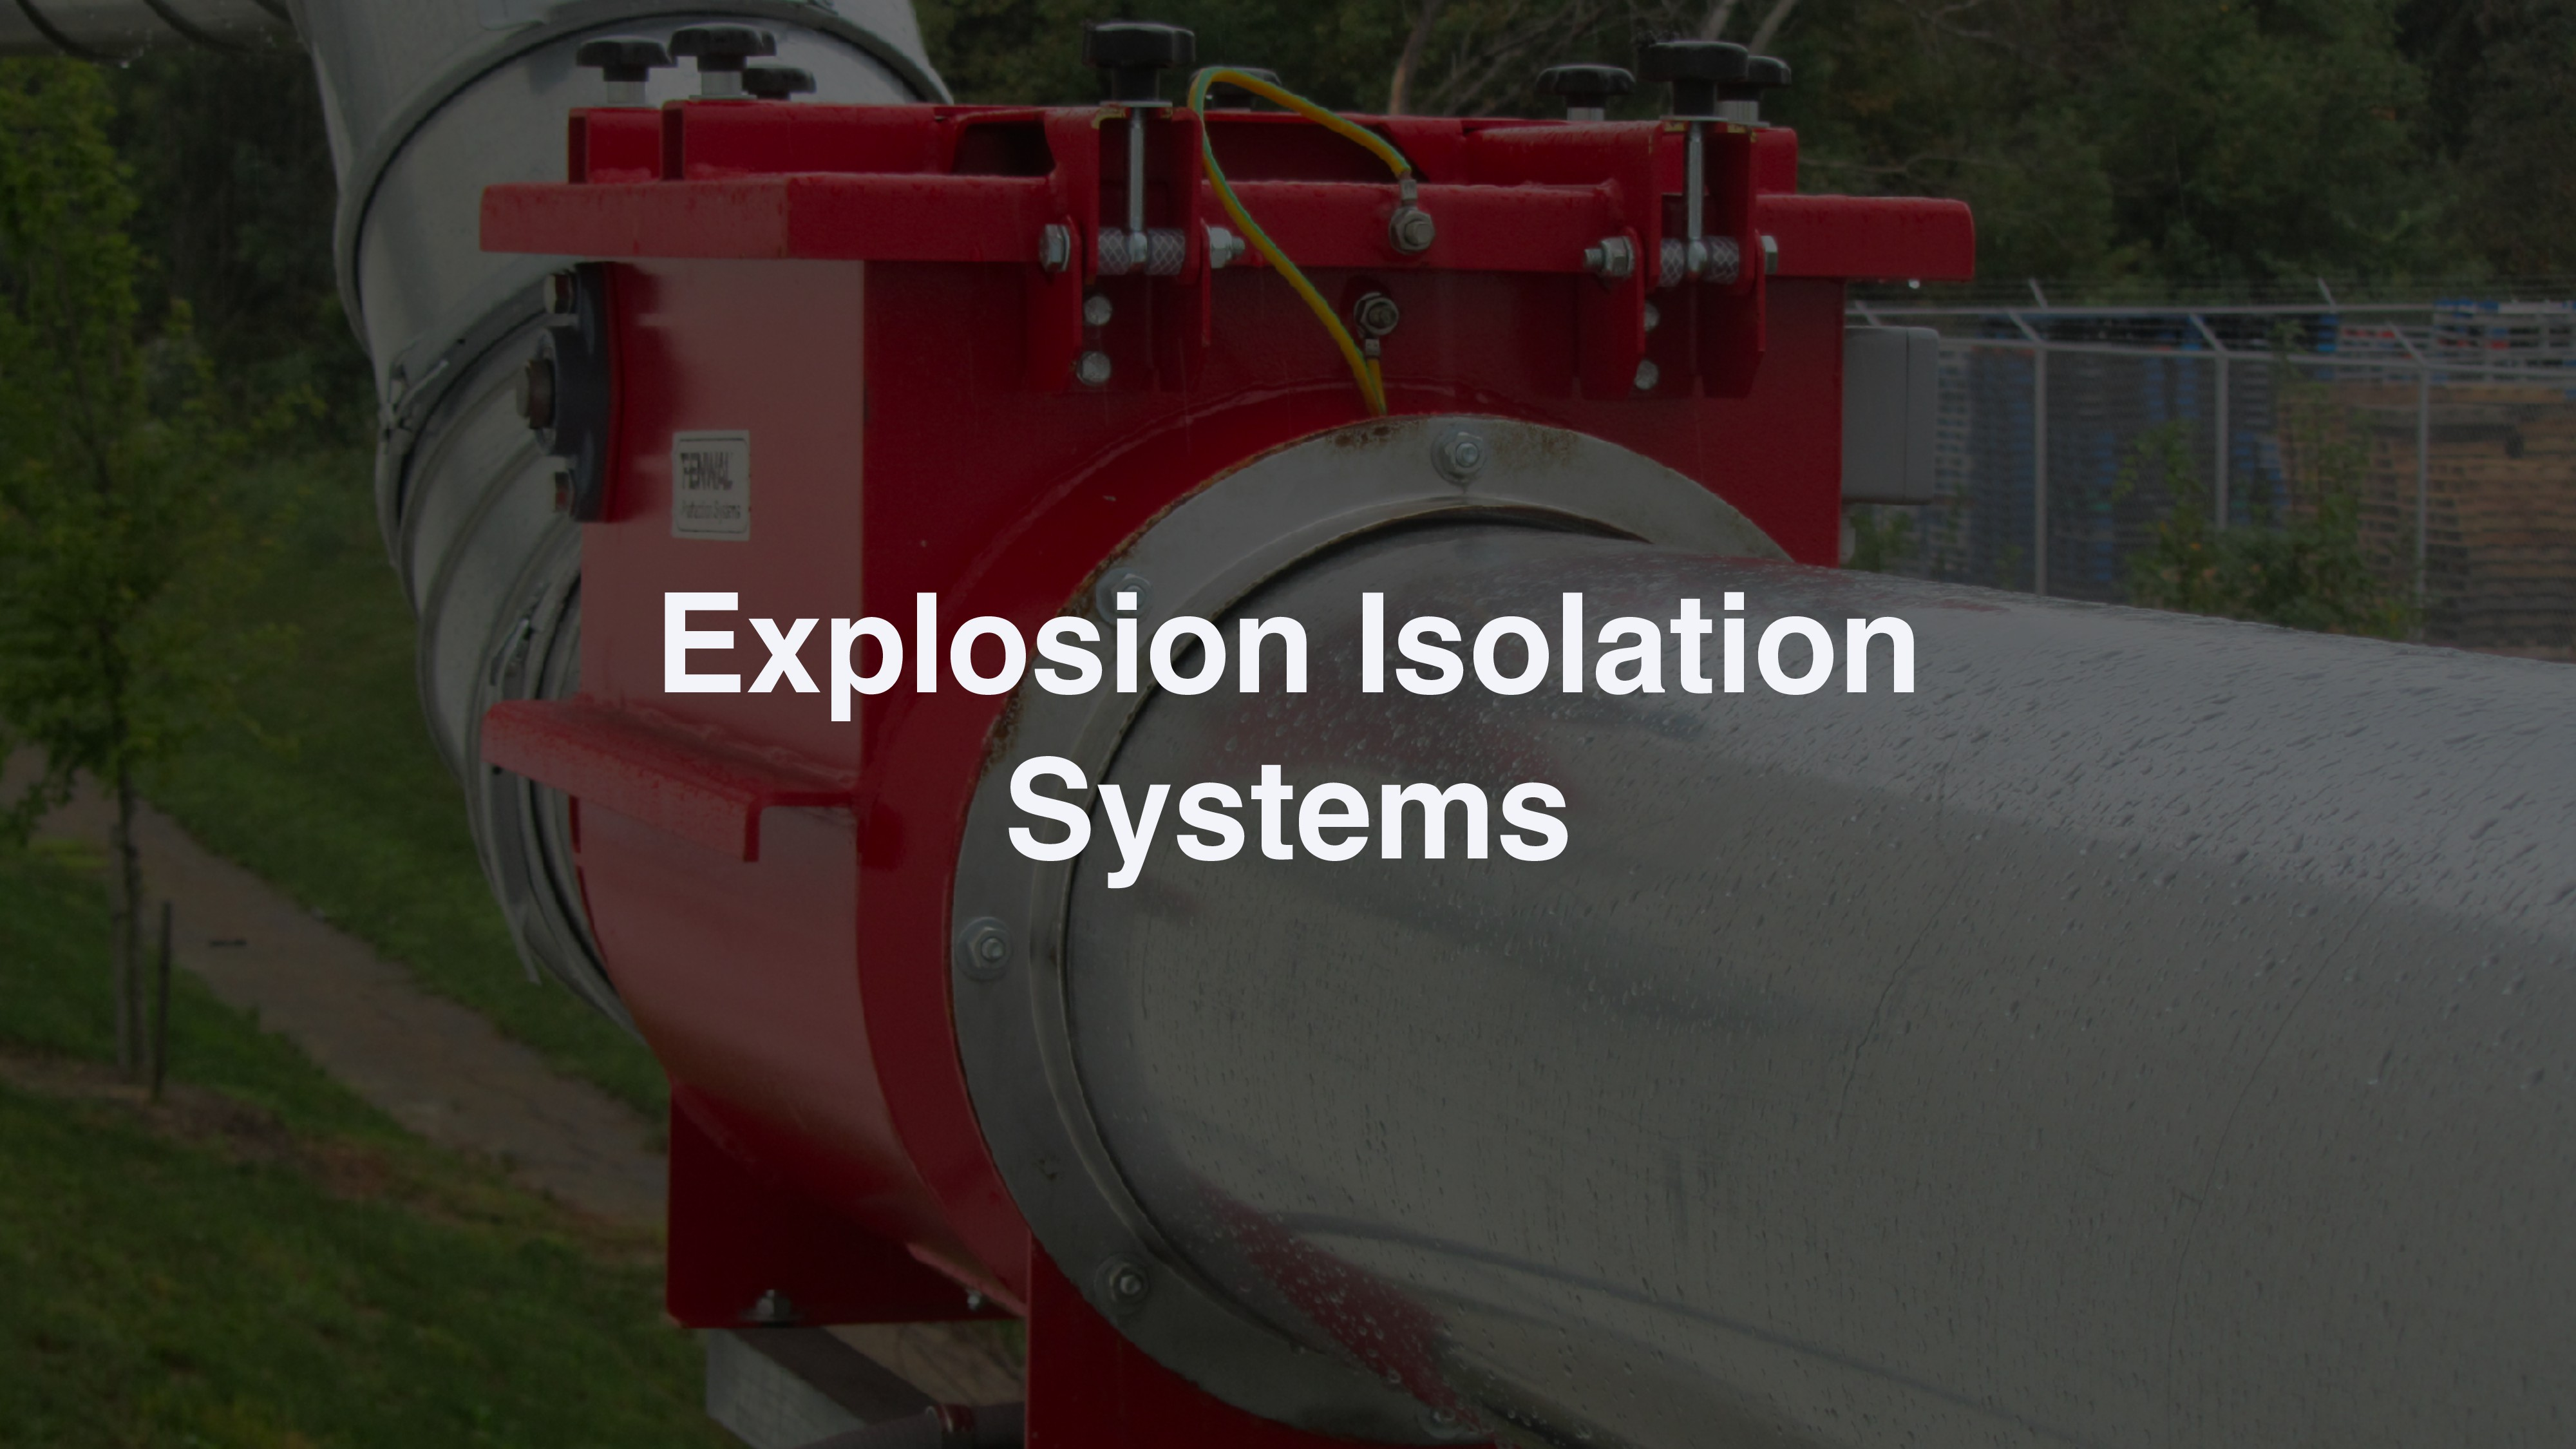 Explosion Isolation Systems